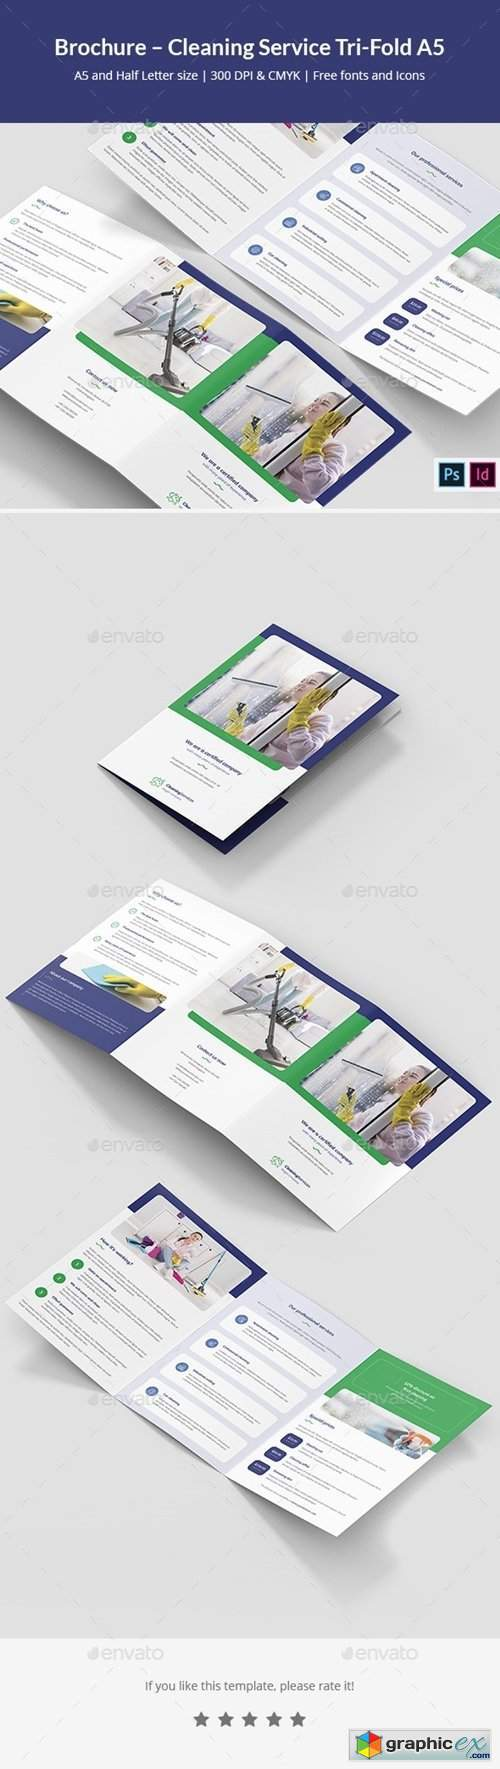 Brochure – Cleaning Service Tri-Fold A5